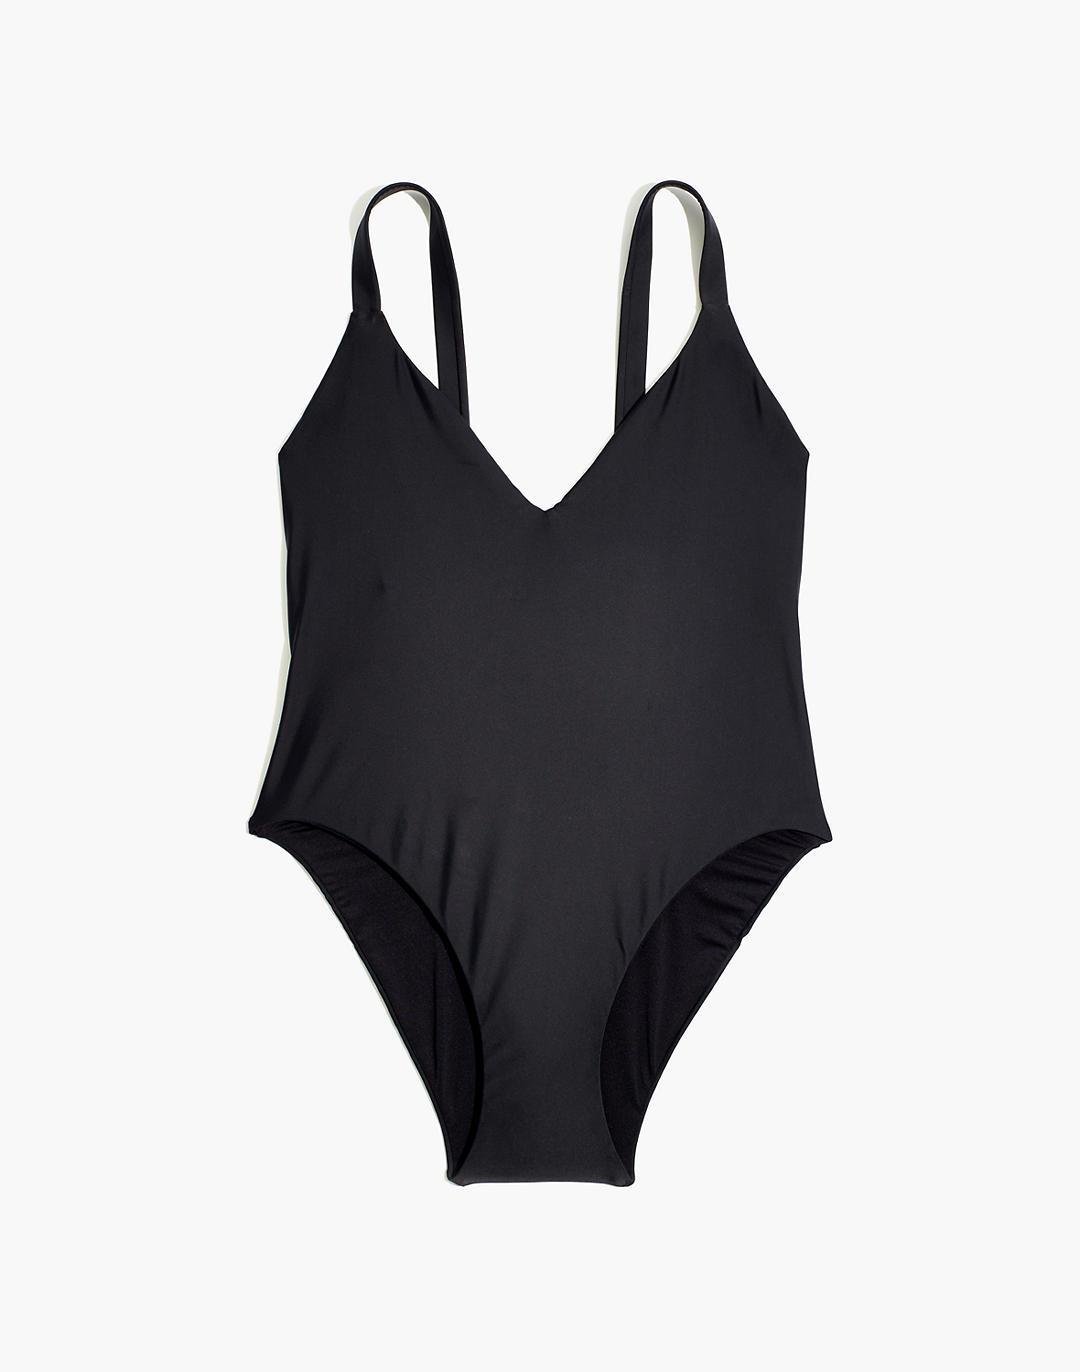 Madewell Second Wave Maillot One-Piece Swimsuit 3